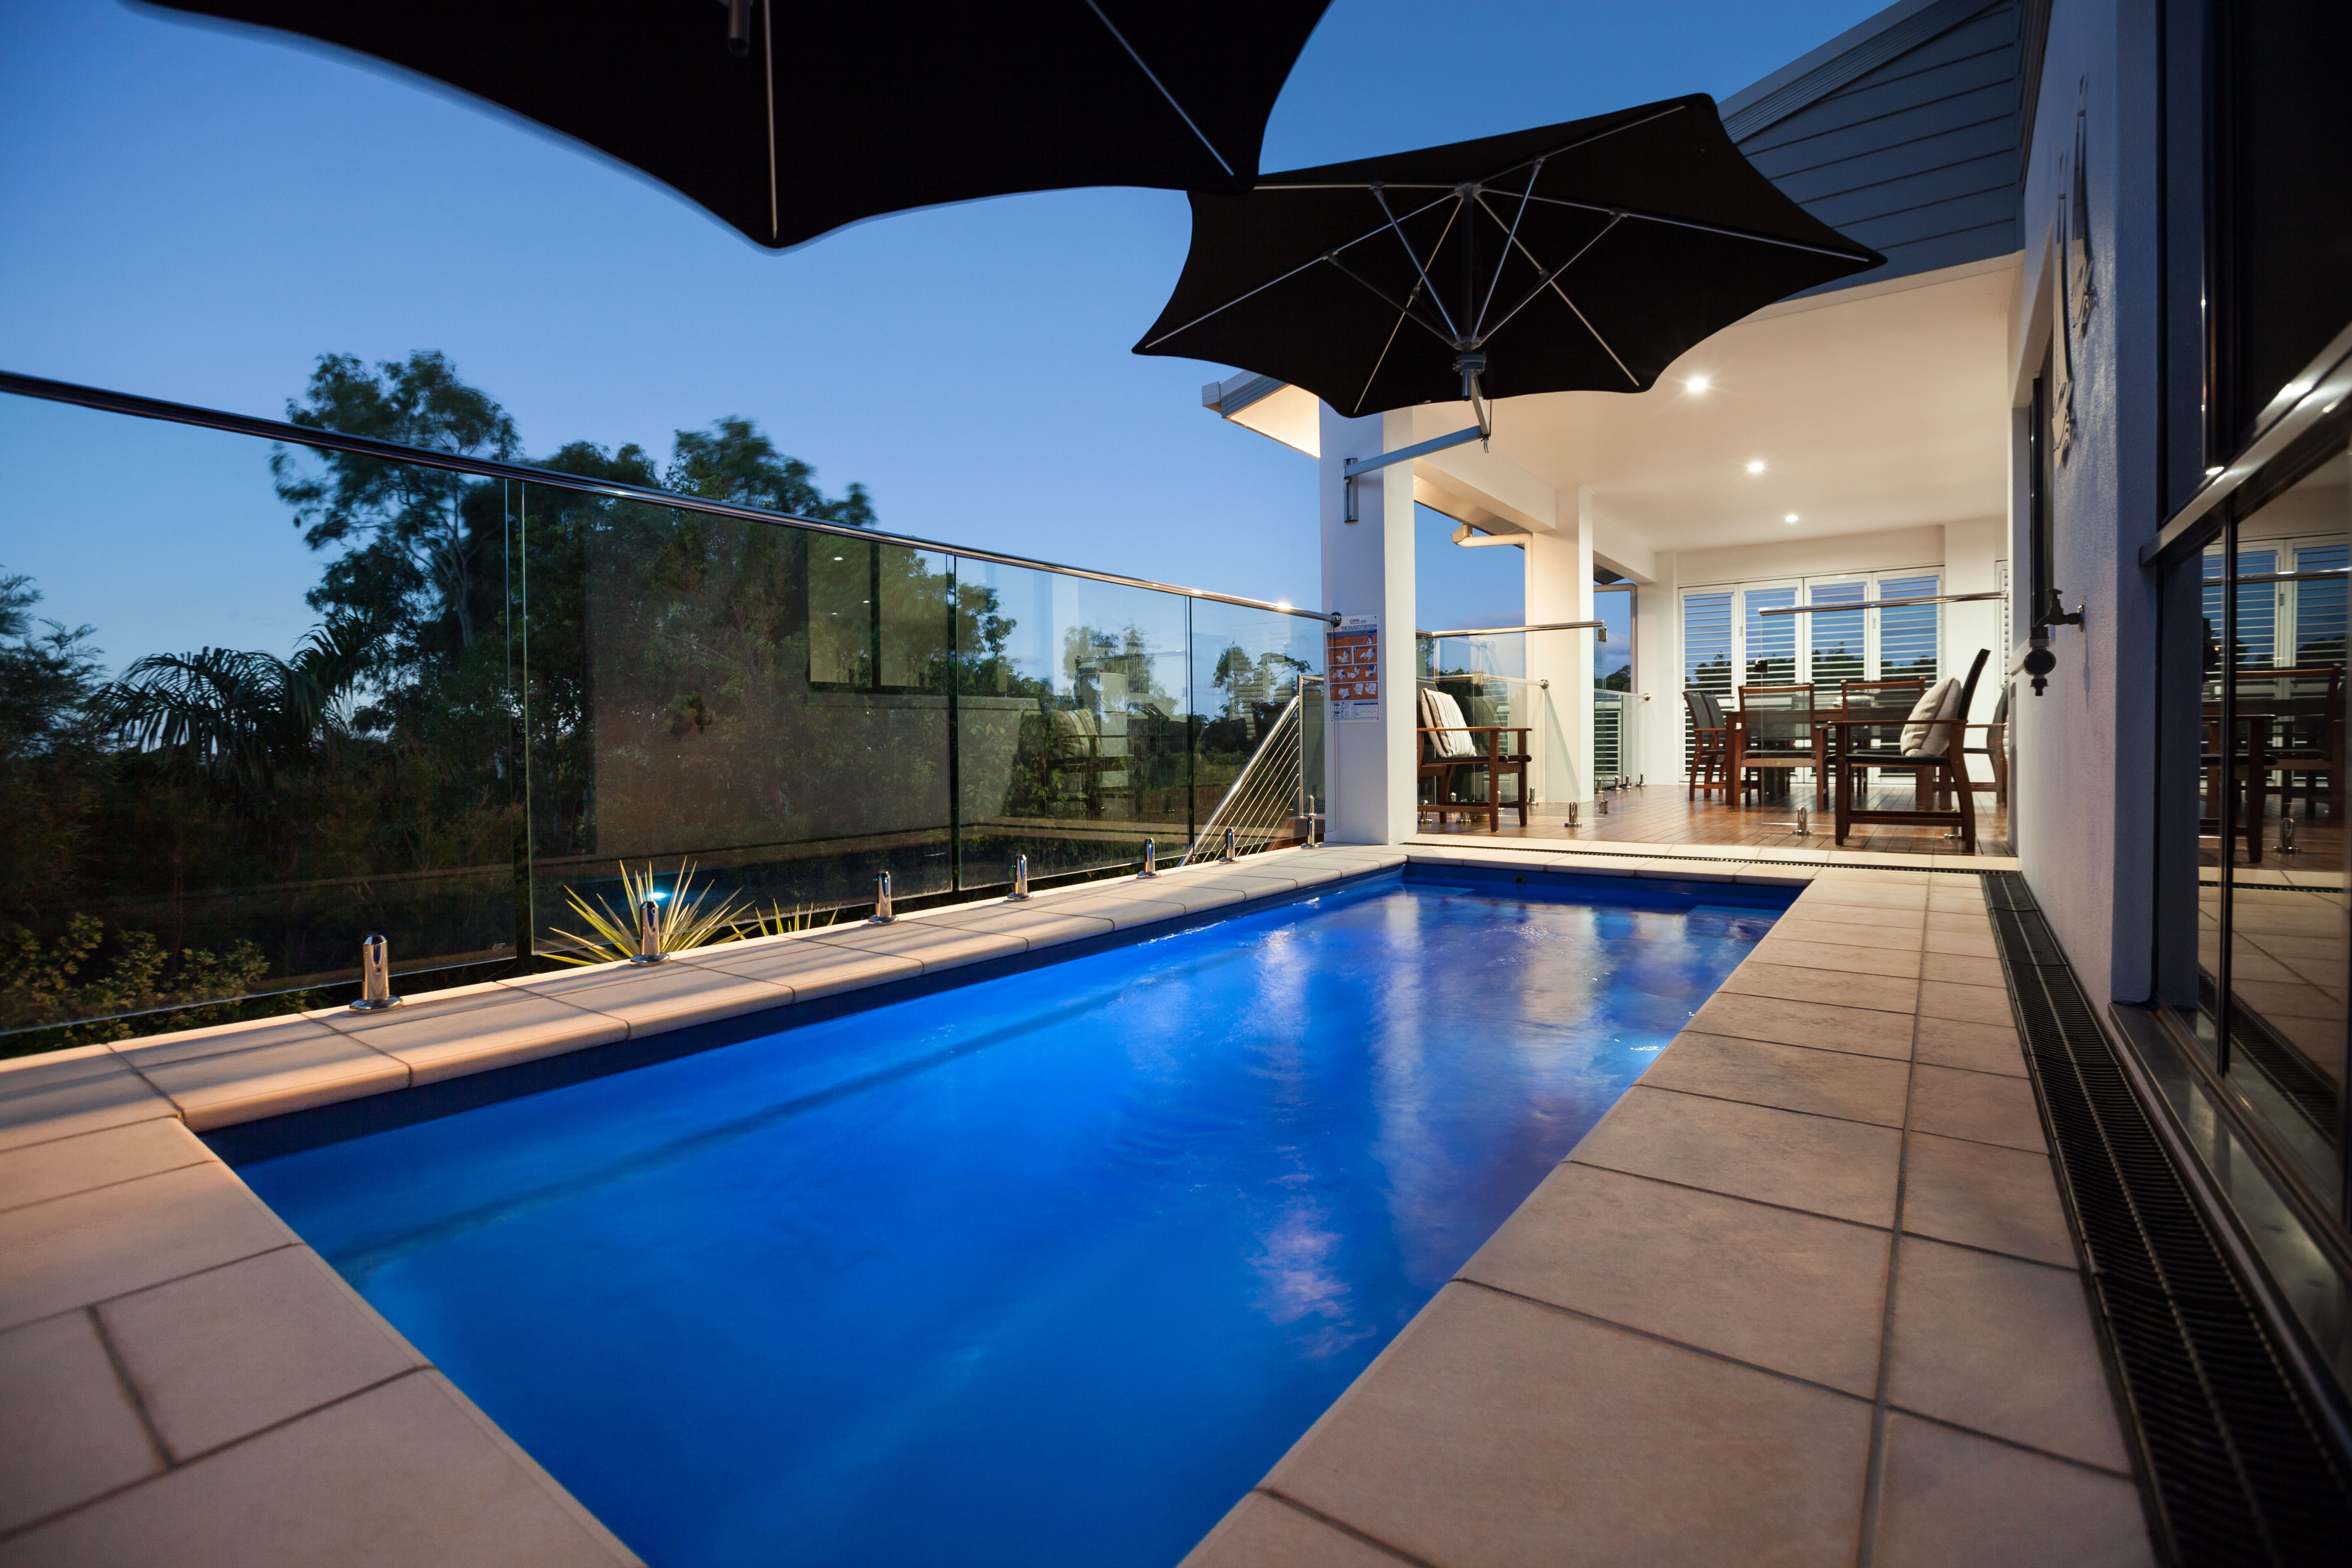 Eden swimming pools pool quotes free pool swimming for Pool builder quotes